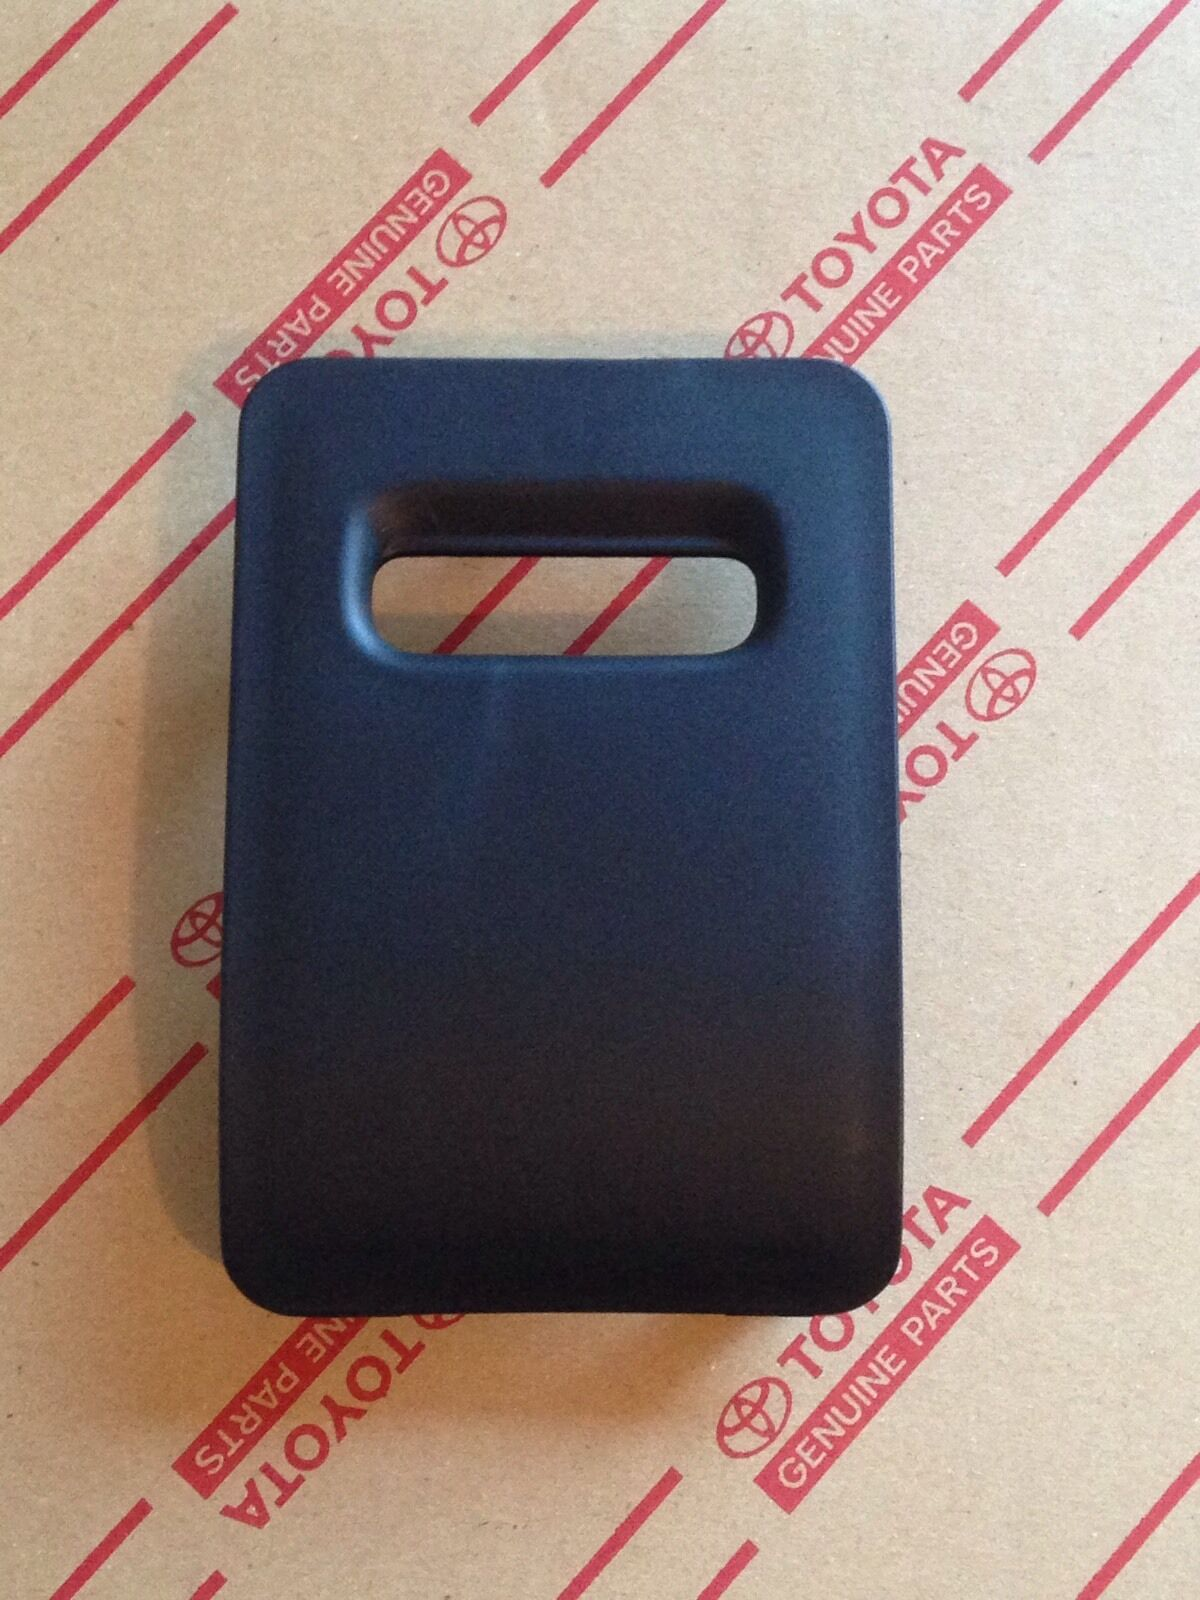 Genuine Oem Toyota Land Cruiser 91 94 Black Inner Fuse Box Cover 2005 Chevy Colorado 1 Of 2only Available See More